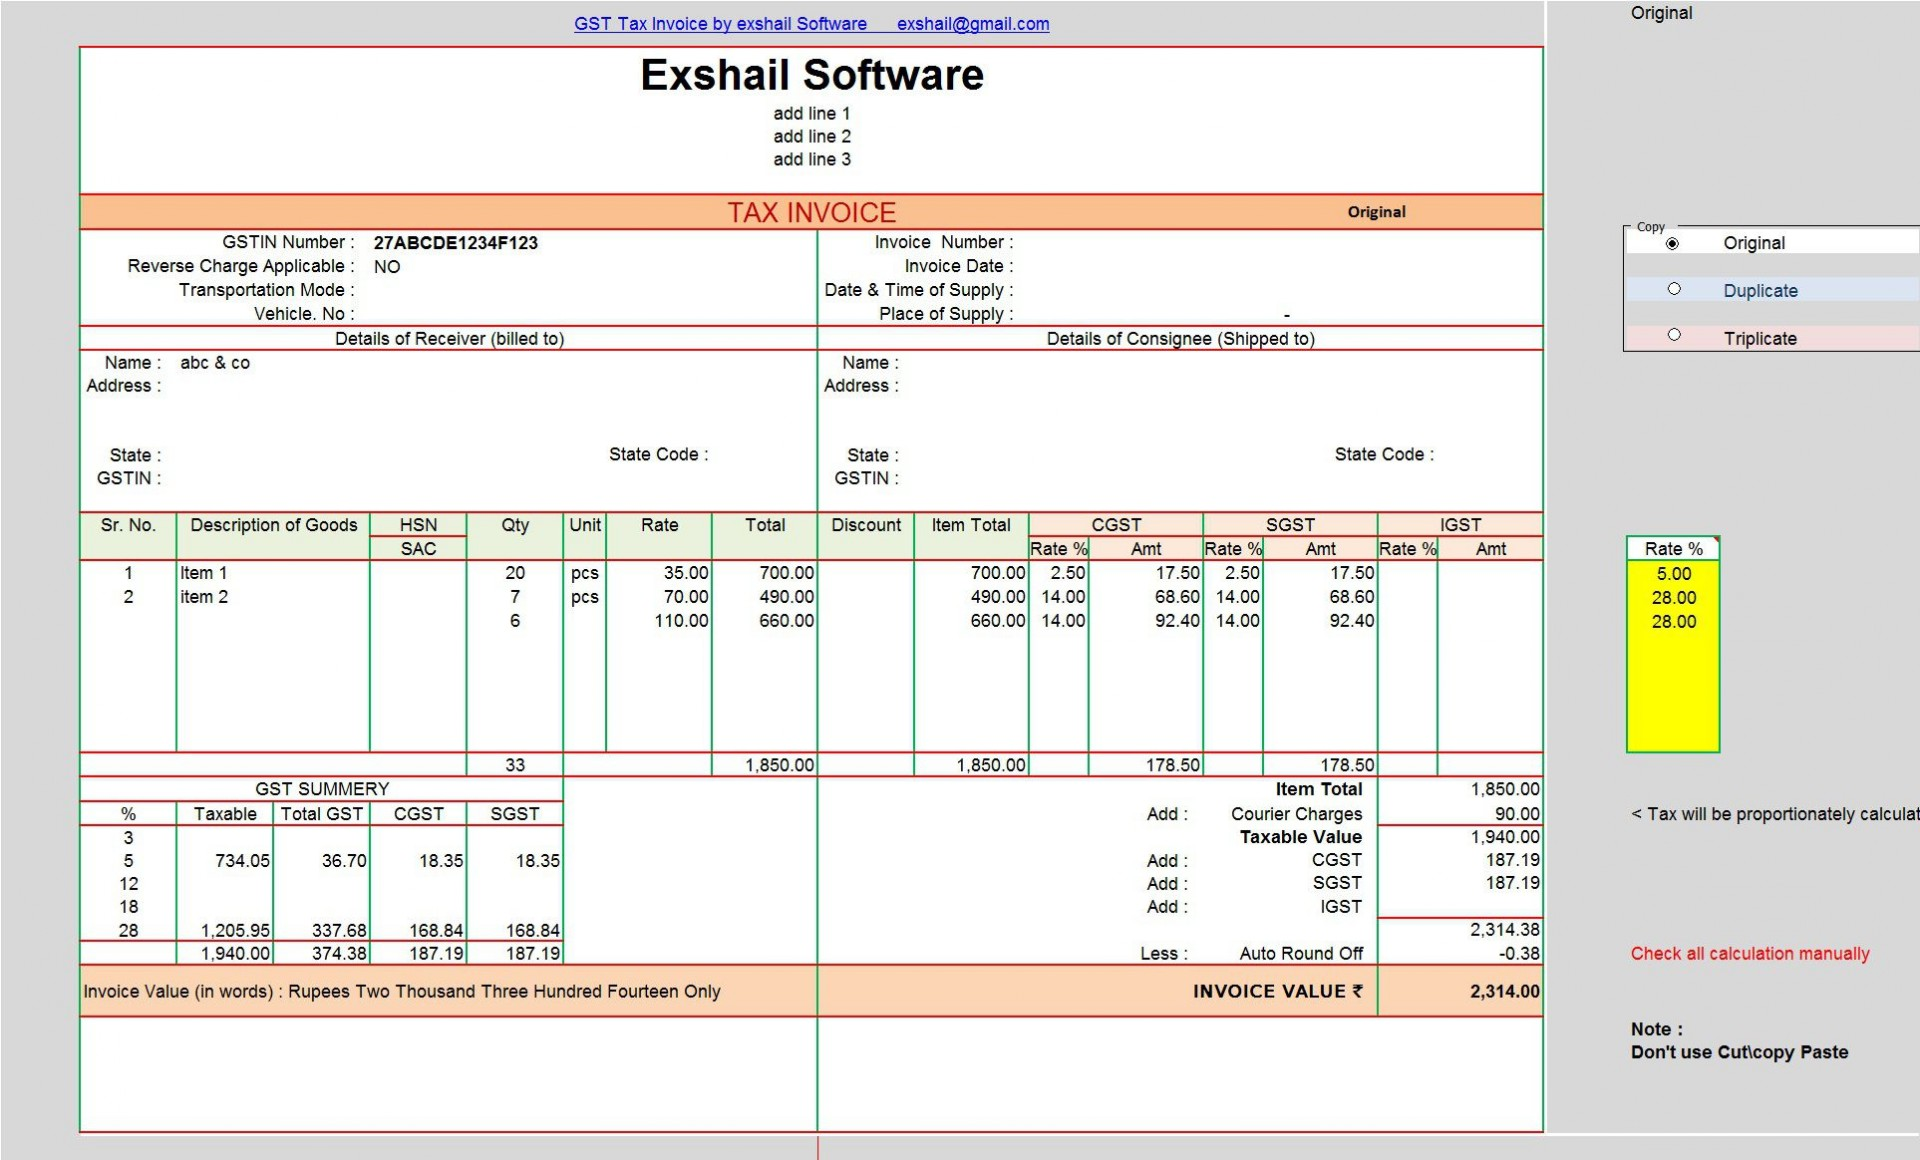 003 Wondrou Excel Gst Invoice Format Download Picture  In Pdf Tally Tax Free Sheet1920